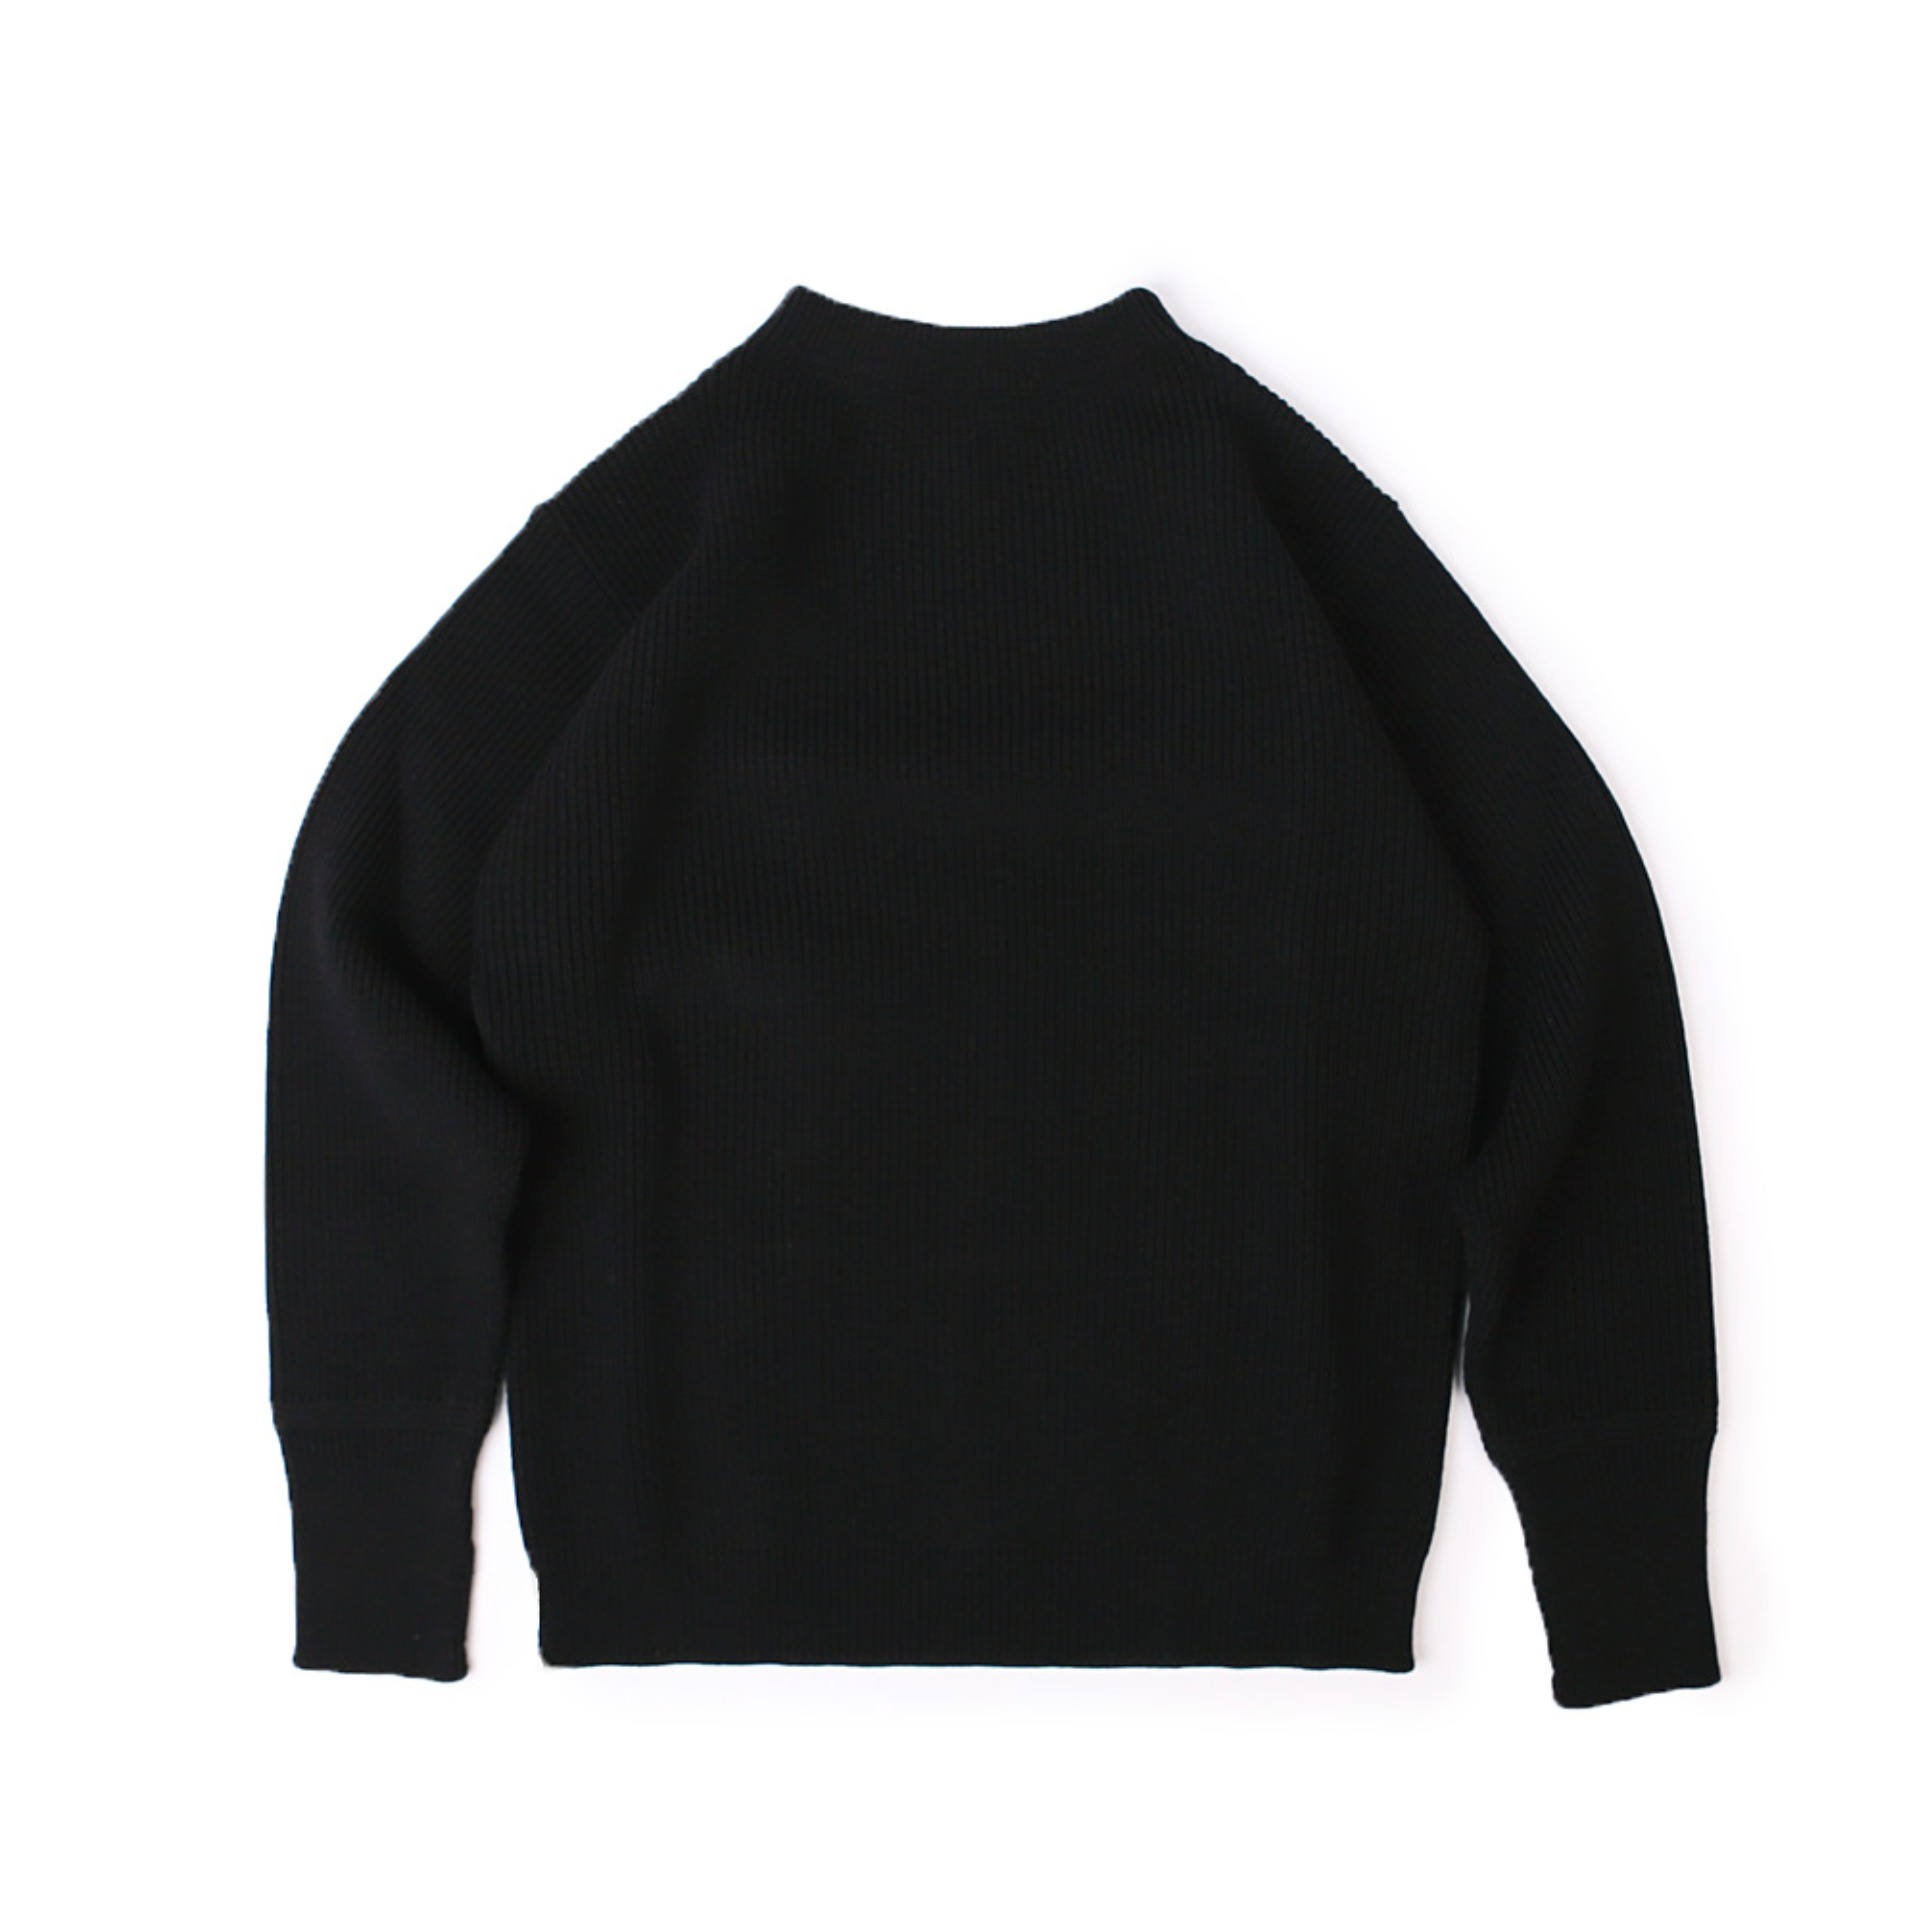 SAILOR CREWNECK SWEATER (Black)